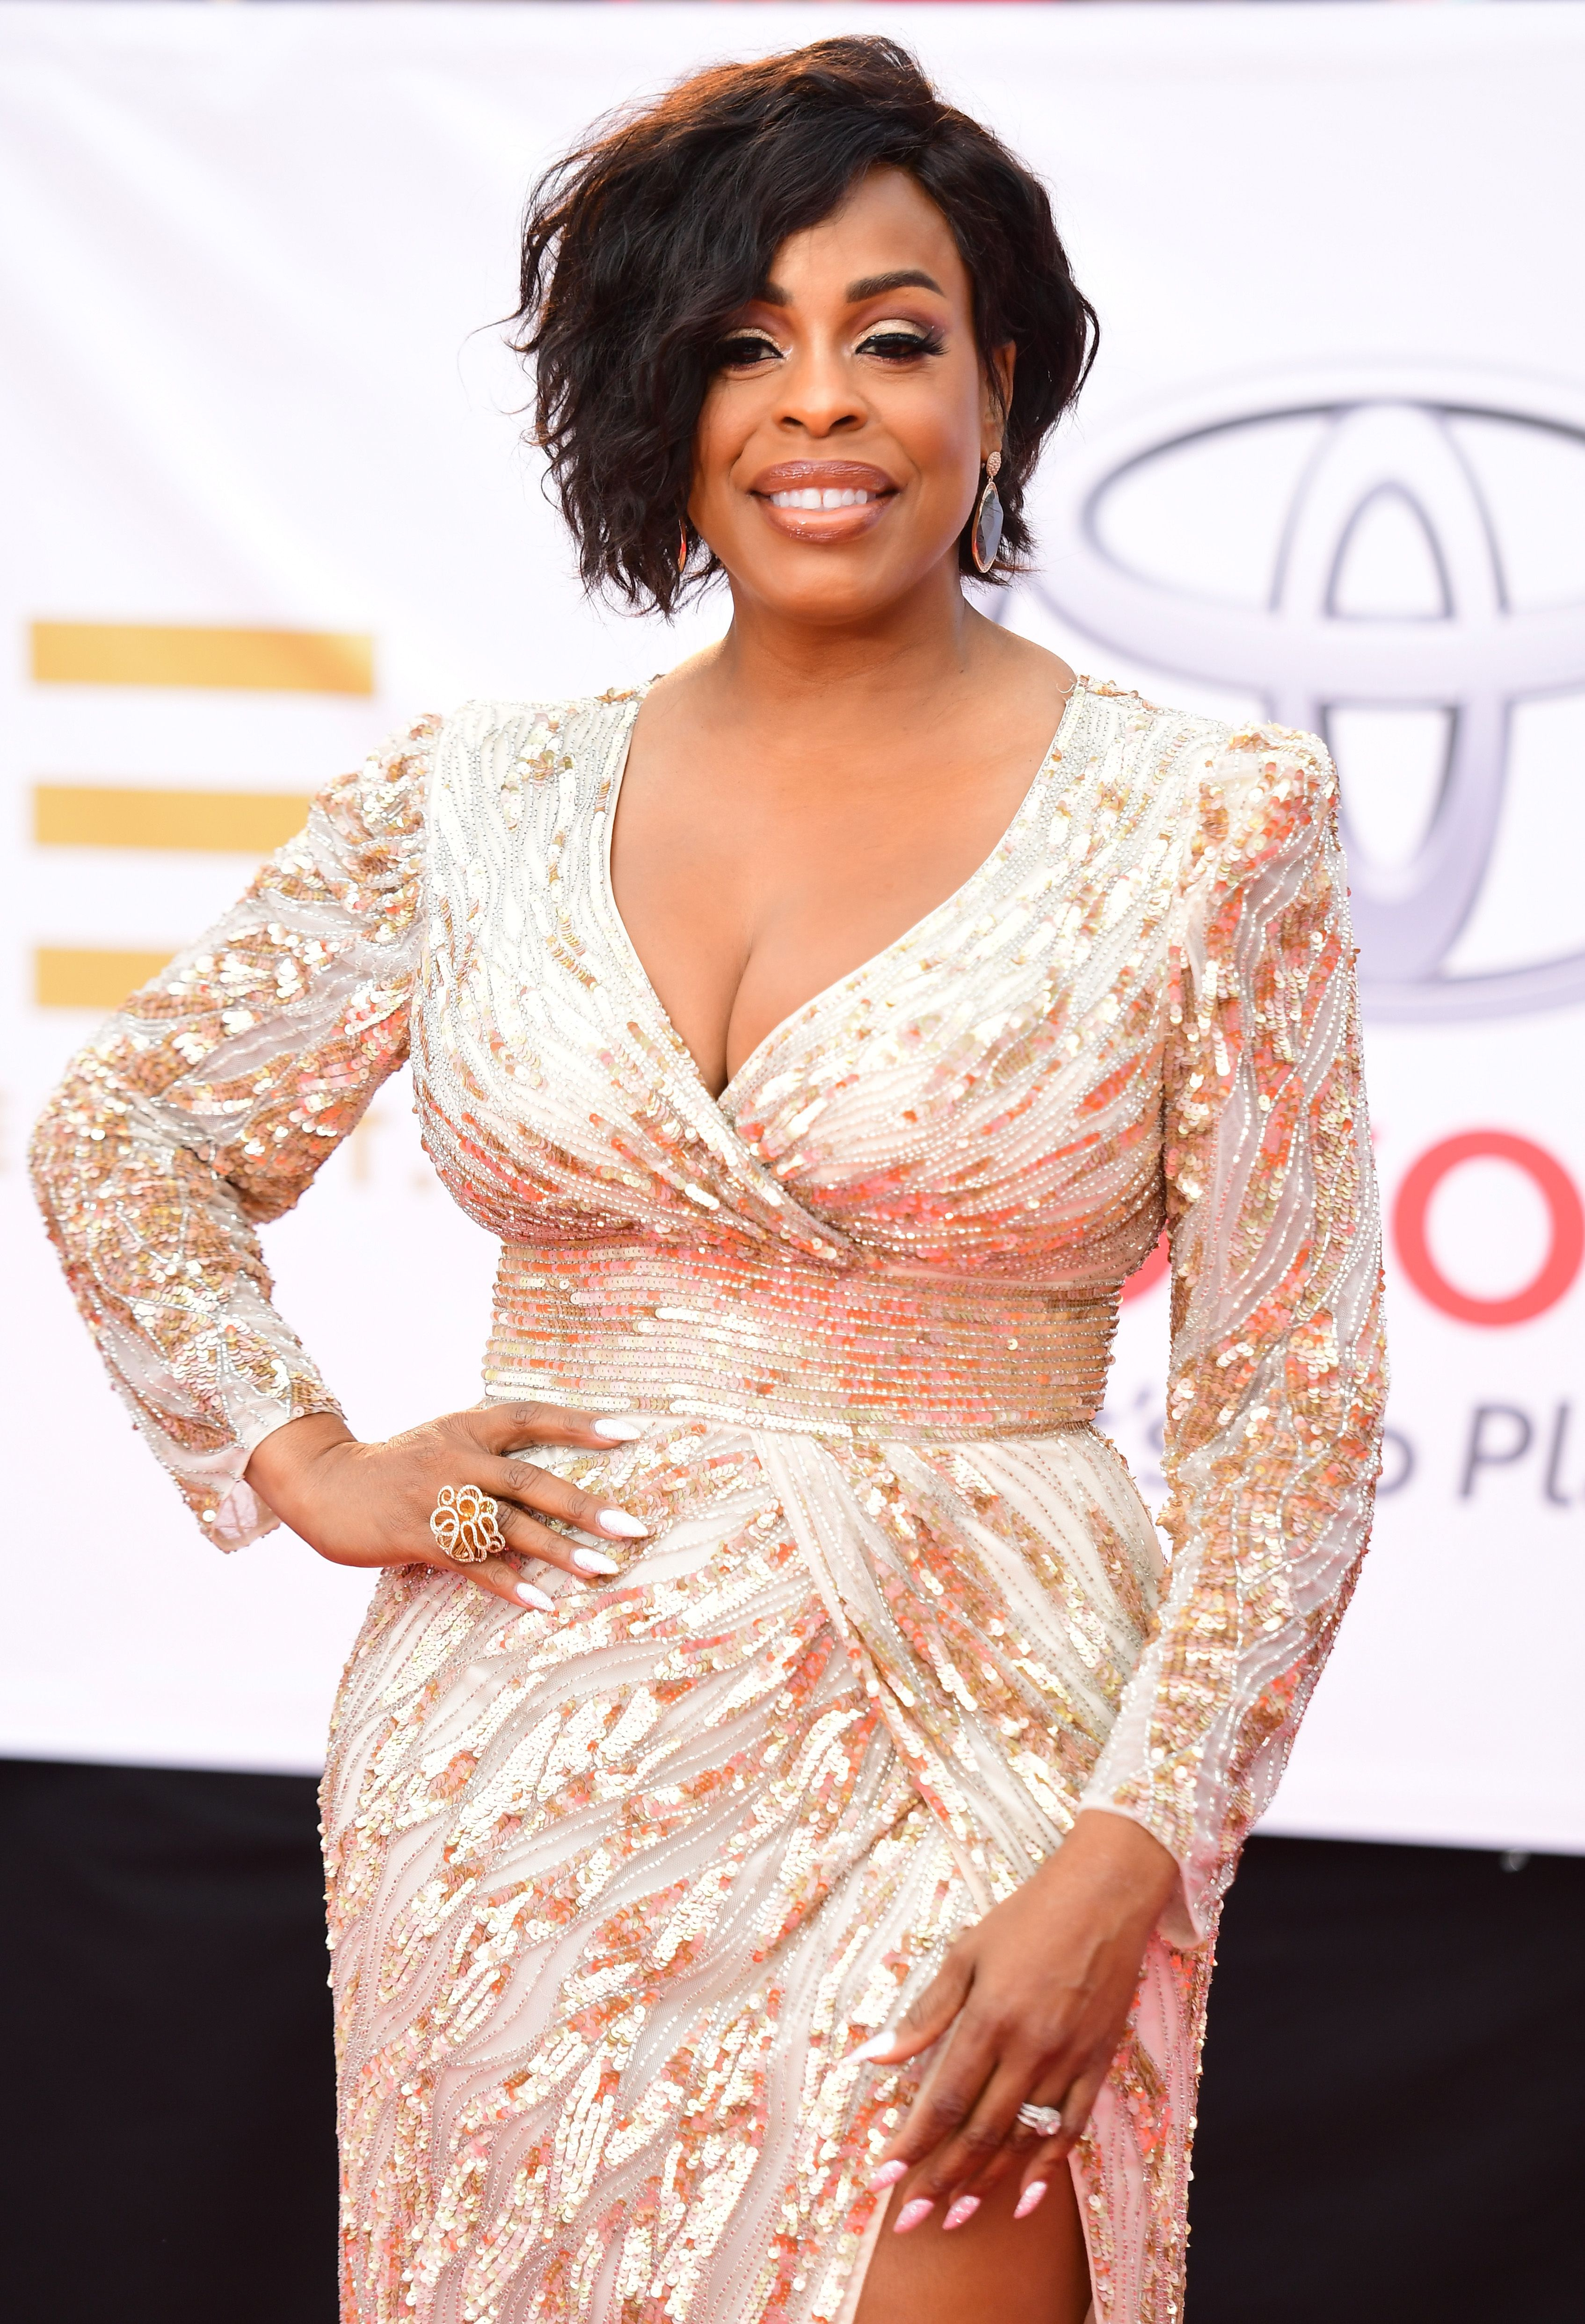 Niecy Nash during the 49th NAACP Image Awards at Pasadena Civic Auditorium on January 15, 2018 in Pasadena, California. | Source: Getty Images